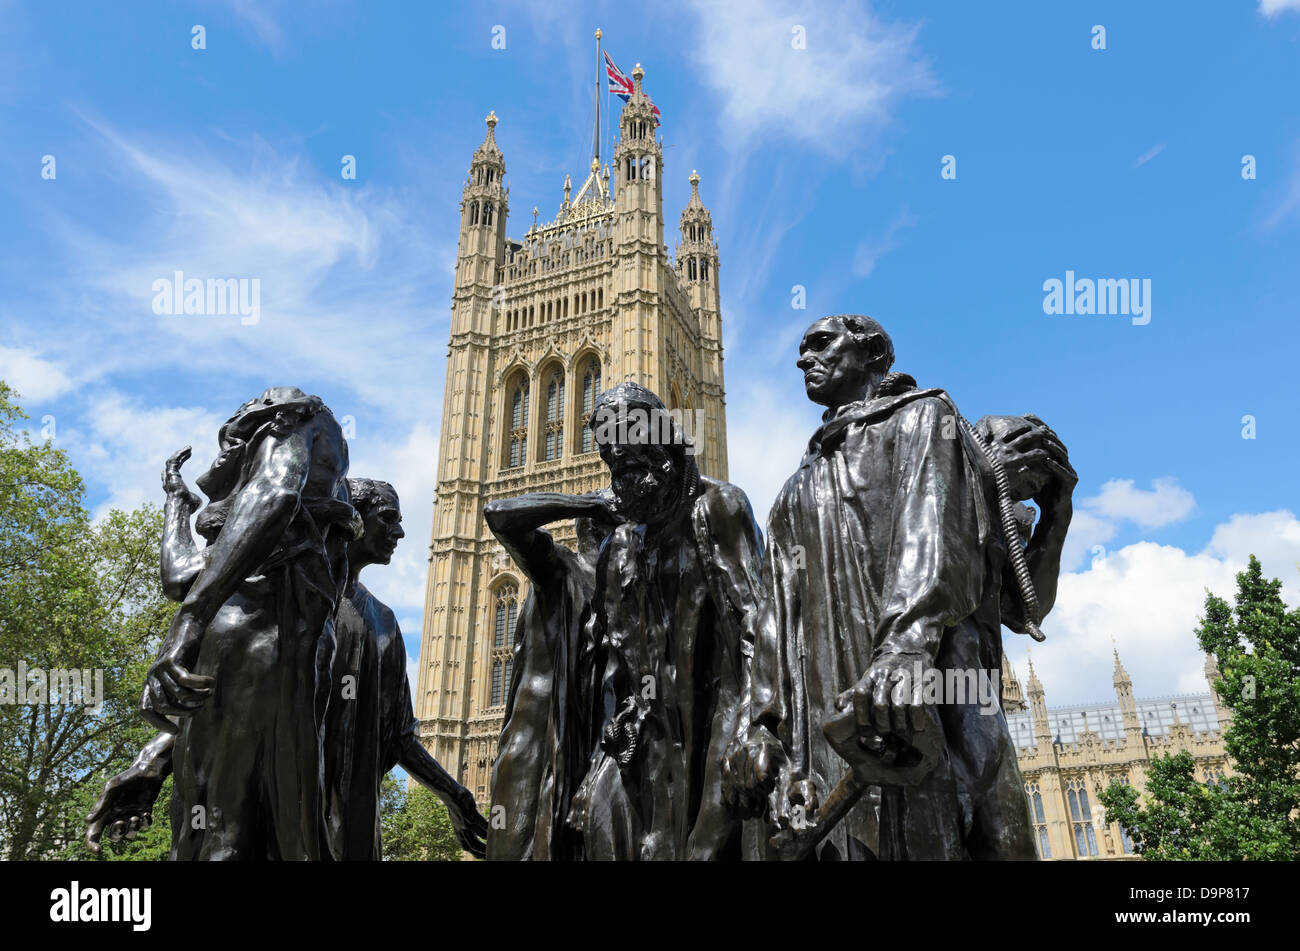 Les Bourgeois de Calais sculpture by Auguste Rodin completed in 1889 in front of Victoria Tower London England. - Stock Image